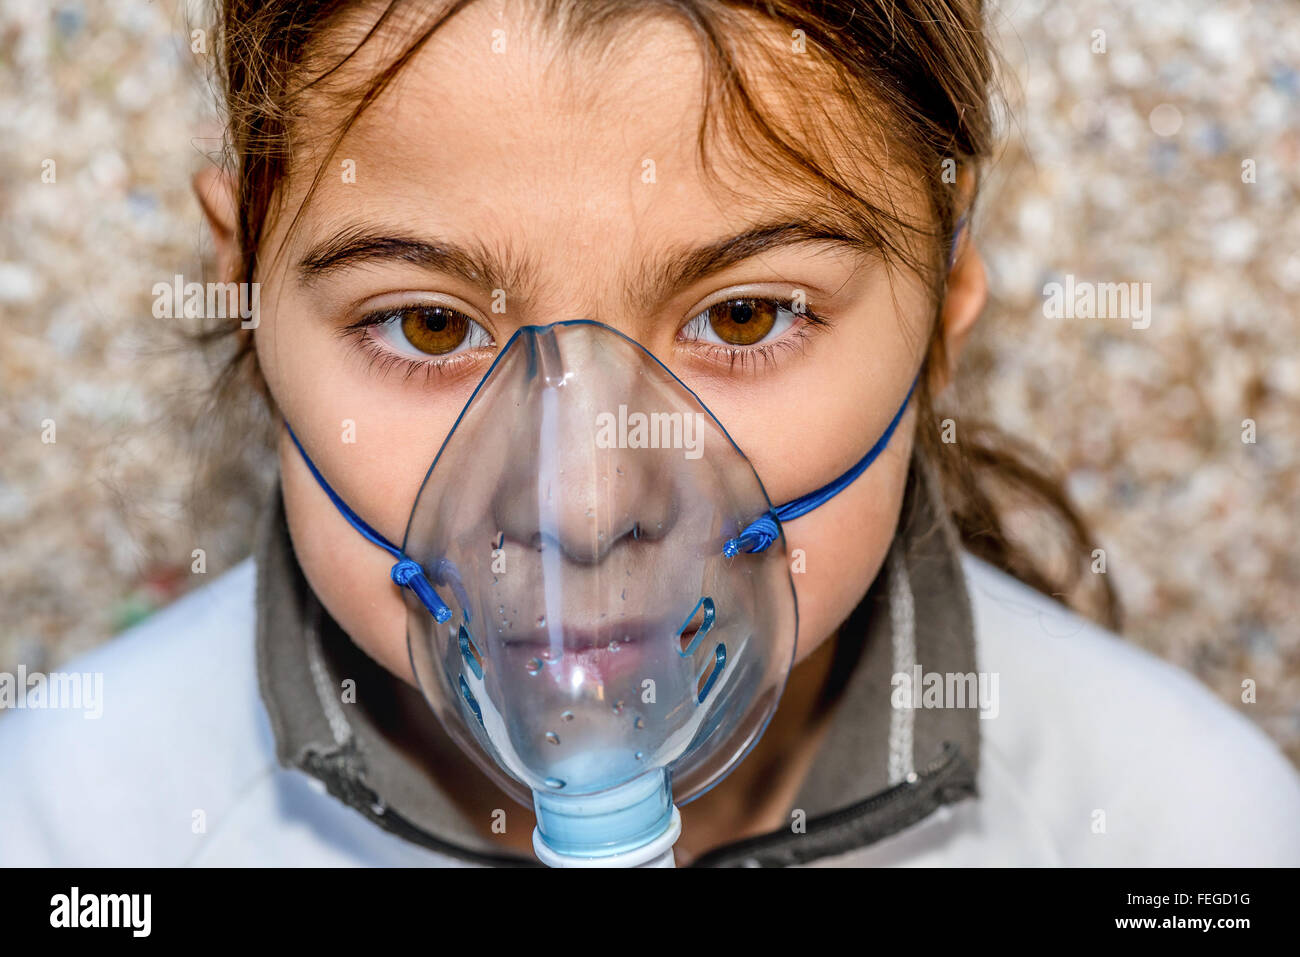 Eight years old kid with bronchitis inhaling medication - Stock Image